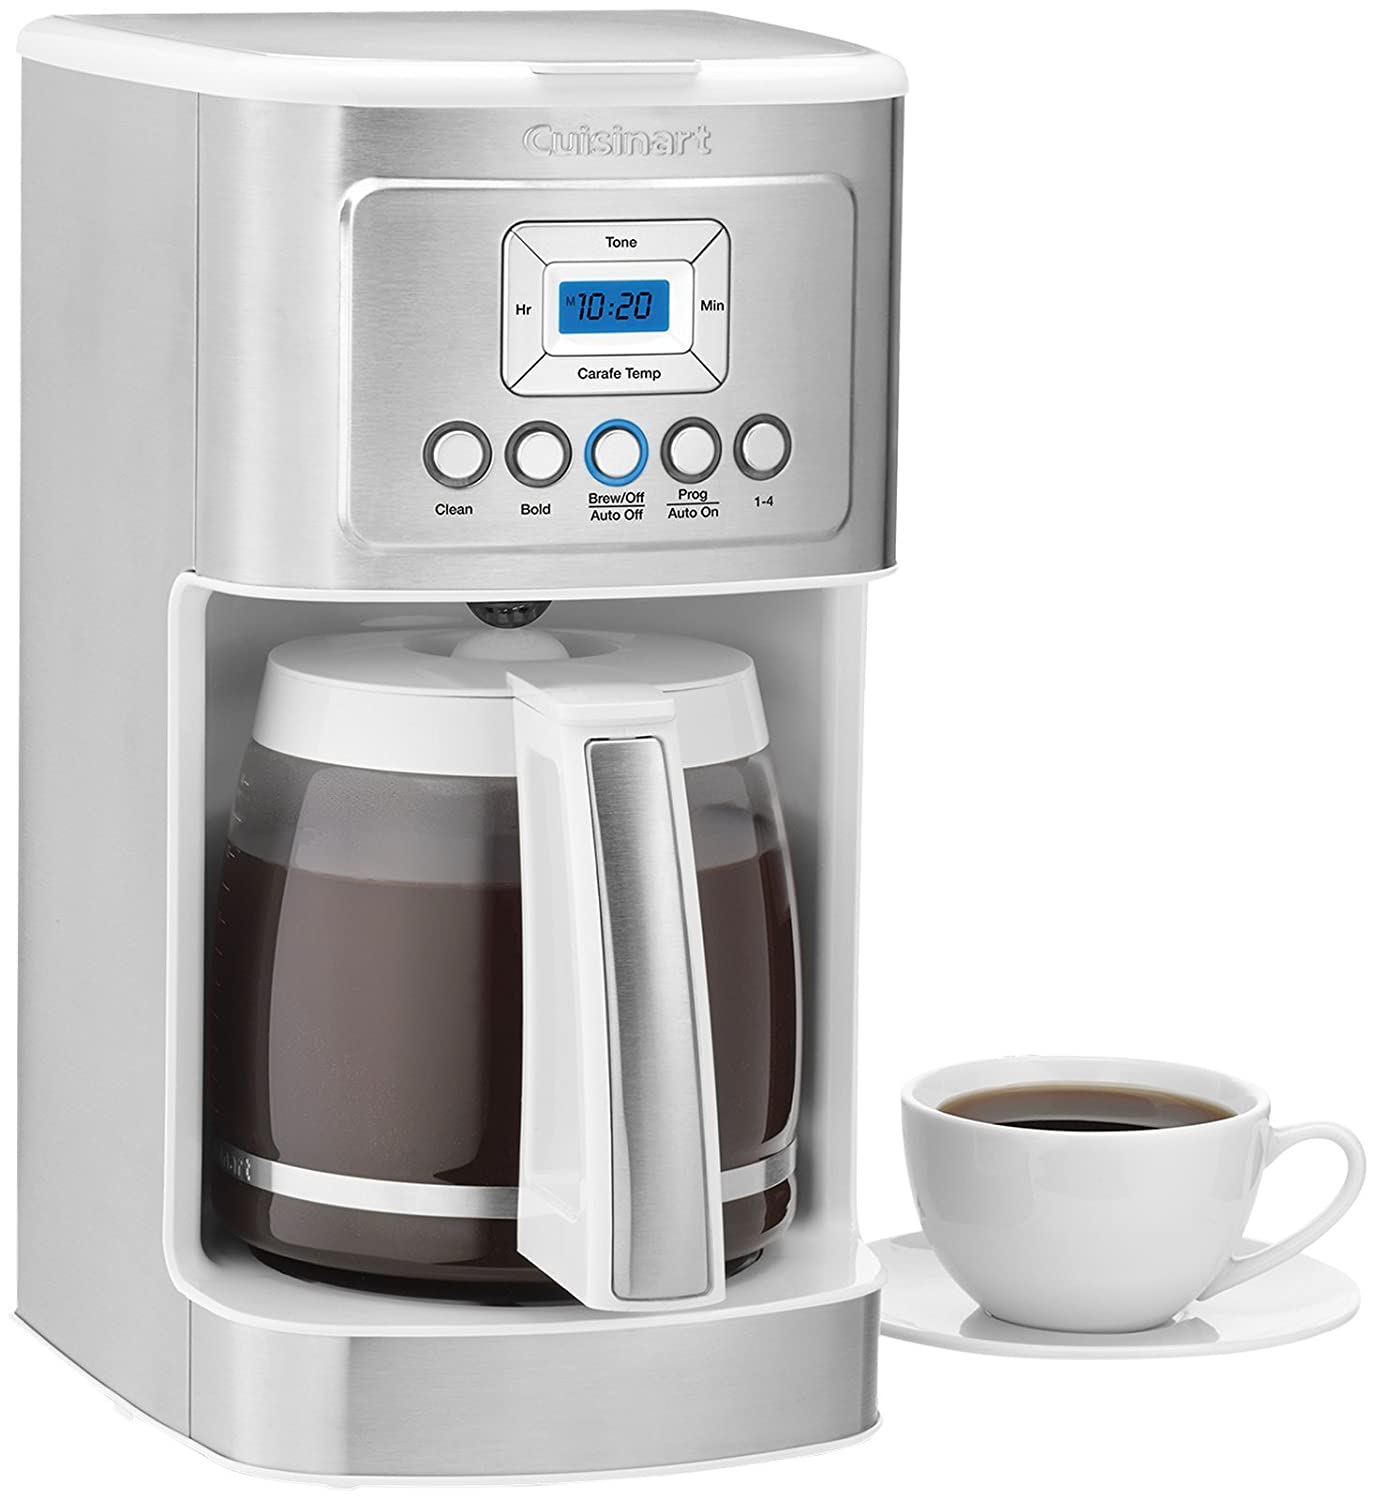 Cuisinart coffee maker stainless steel carafe - Amazon Com Cuisinart Dcc 3200 14 Cup Glass Carafe With Stainless Steel Handle Programmable Coffeemaker White Kitchen Dining